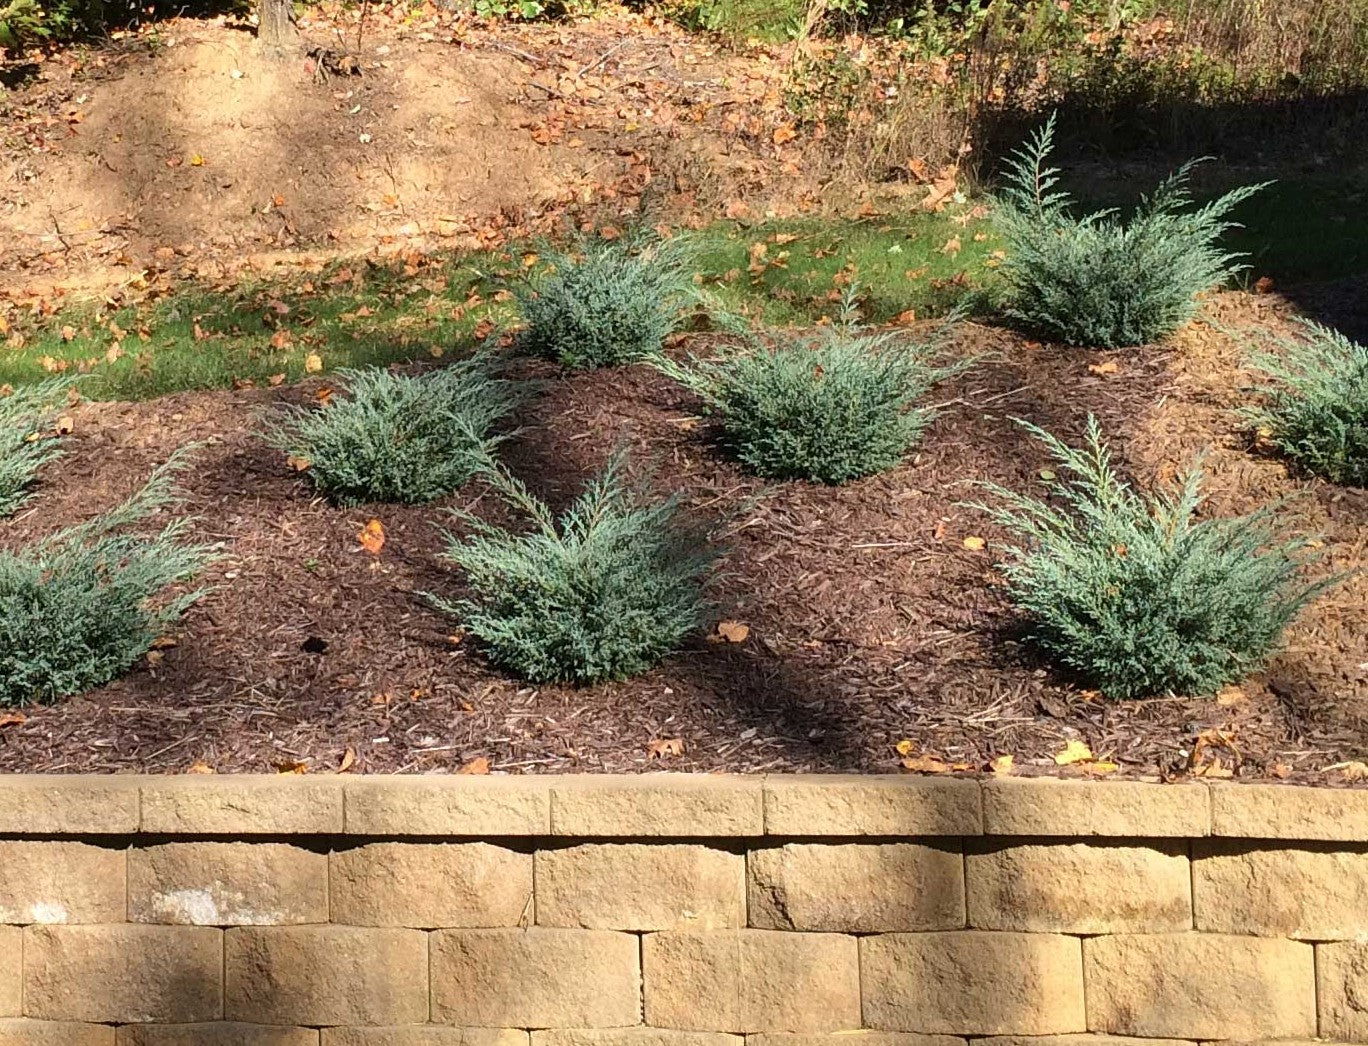 Junipers on Hillsides - Ideas and Care